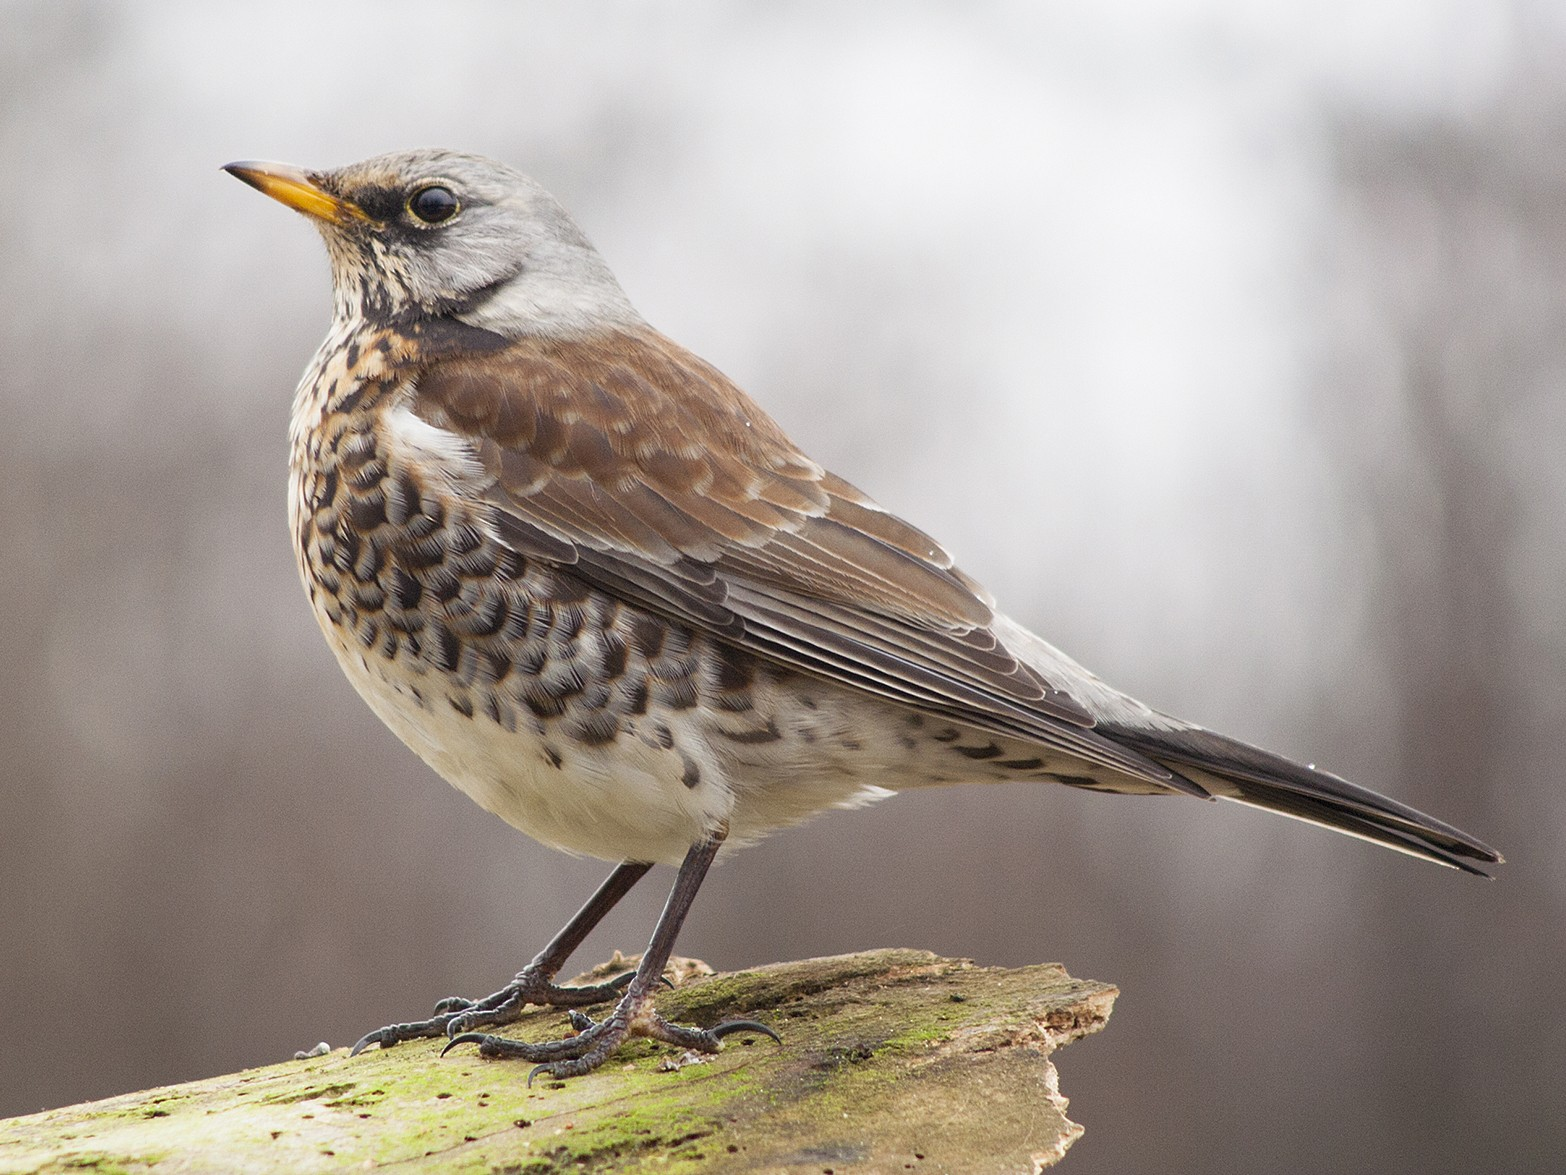 Fieldfare - Michal Jurica